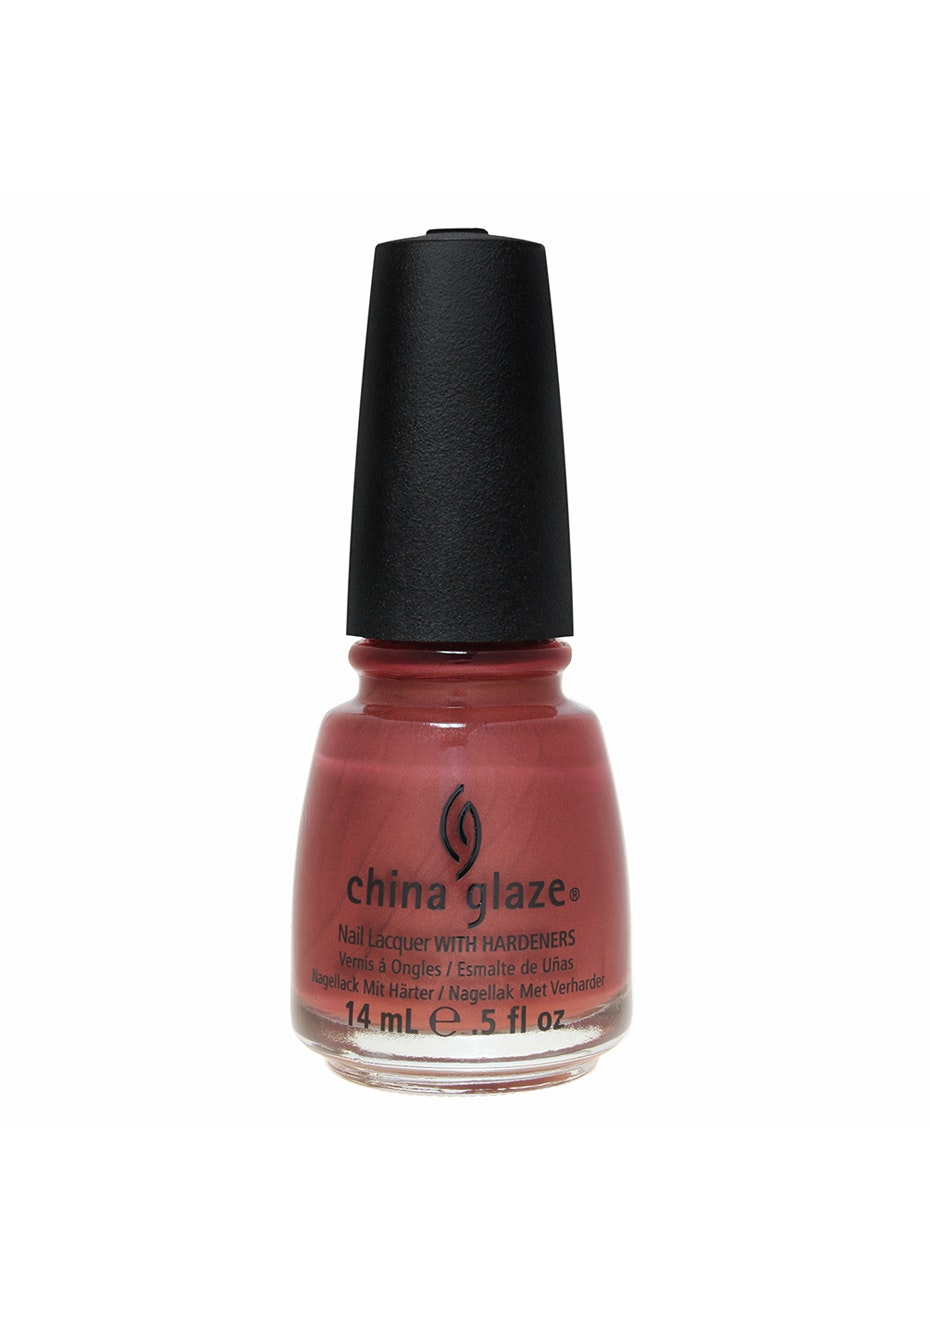 China Glaze #086 YOUR TOUCH